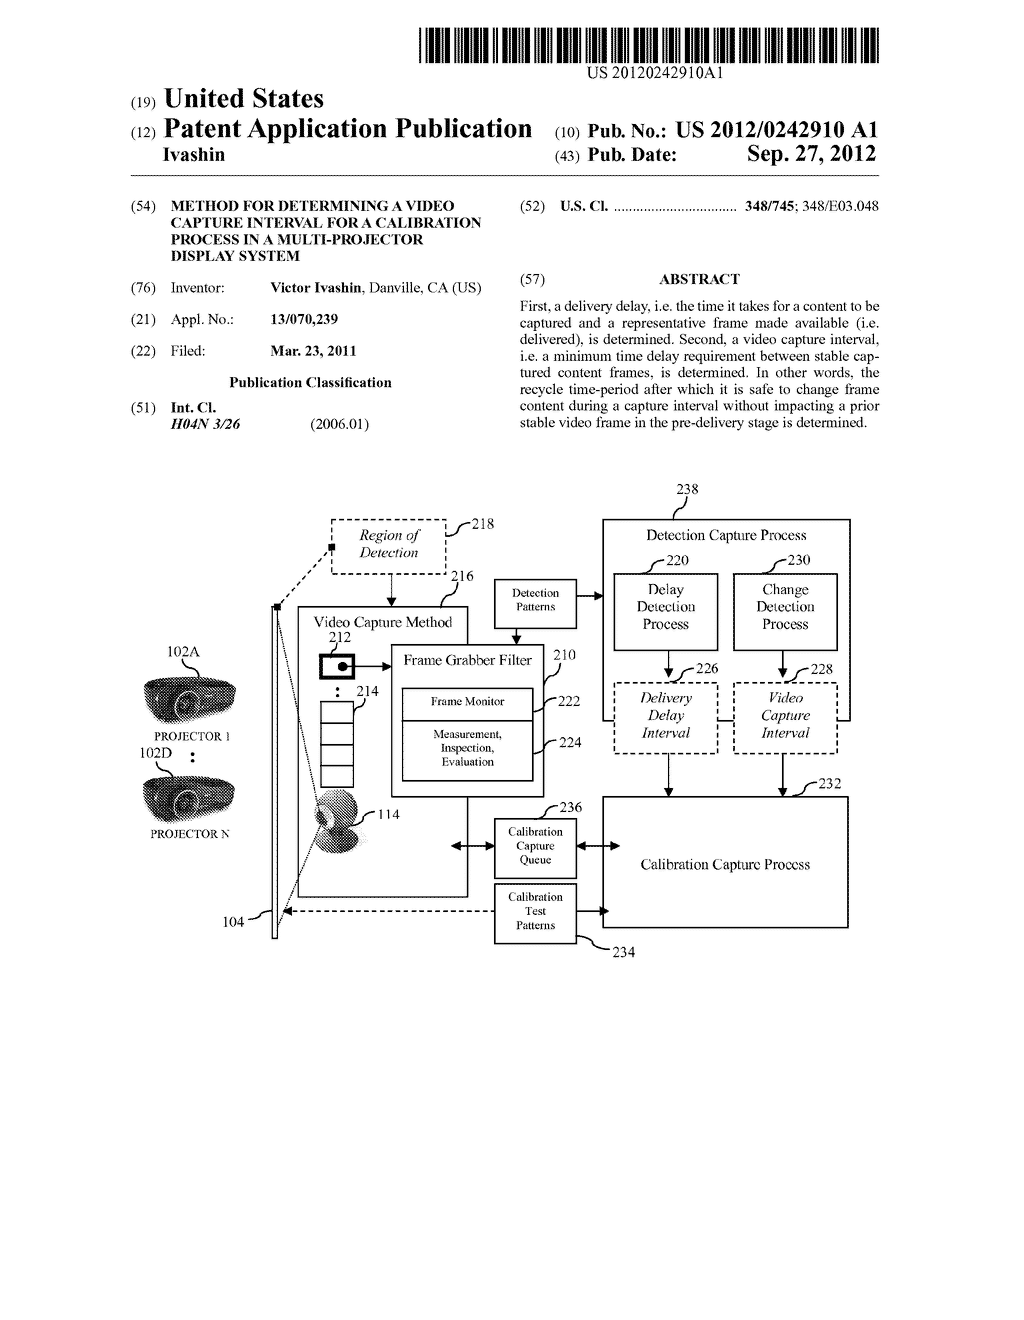 Method For Determining A Video Capture Interval For A Calibration Process     In A Multi-Projector Display System - diagram, schematic, and image 01